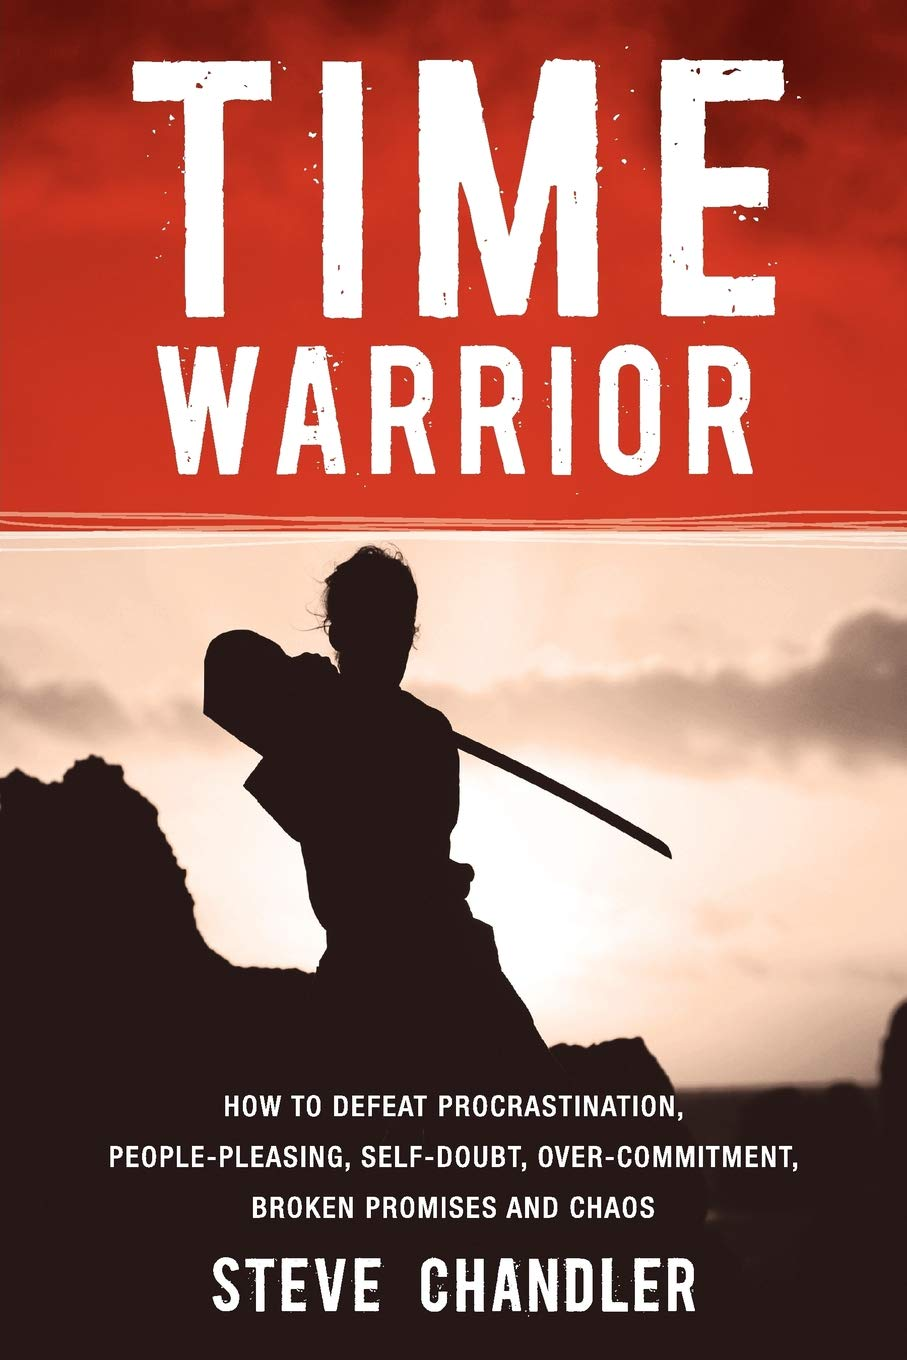 Time warrior by Steve Chandler book cover.